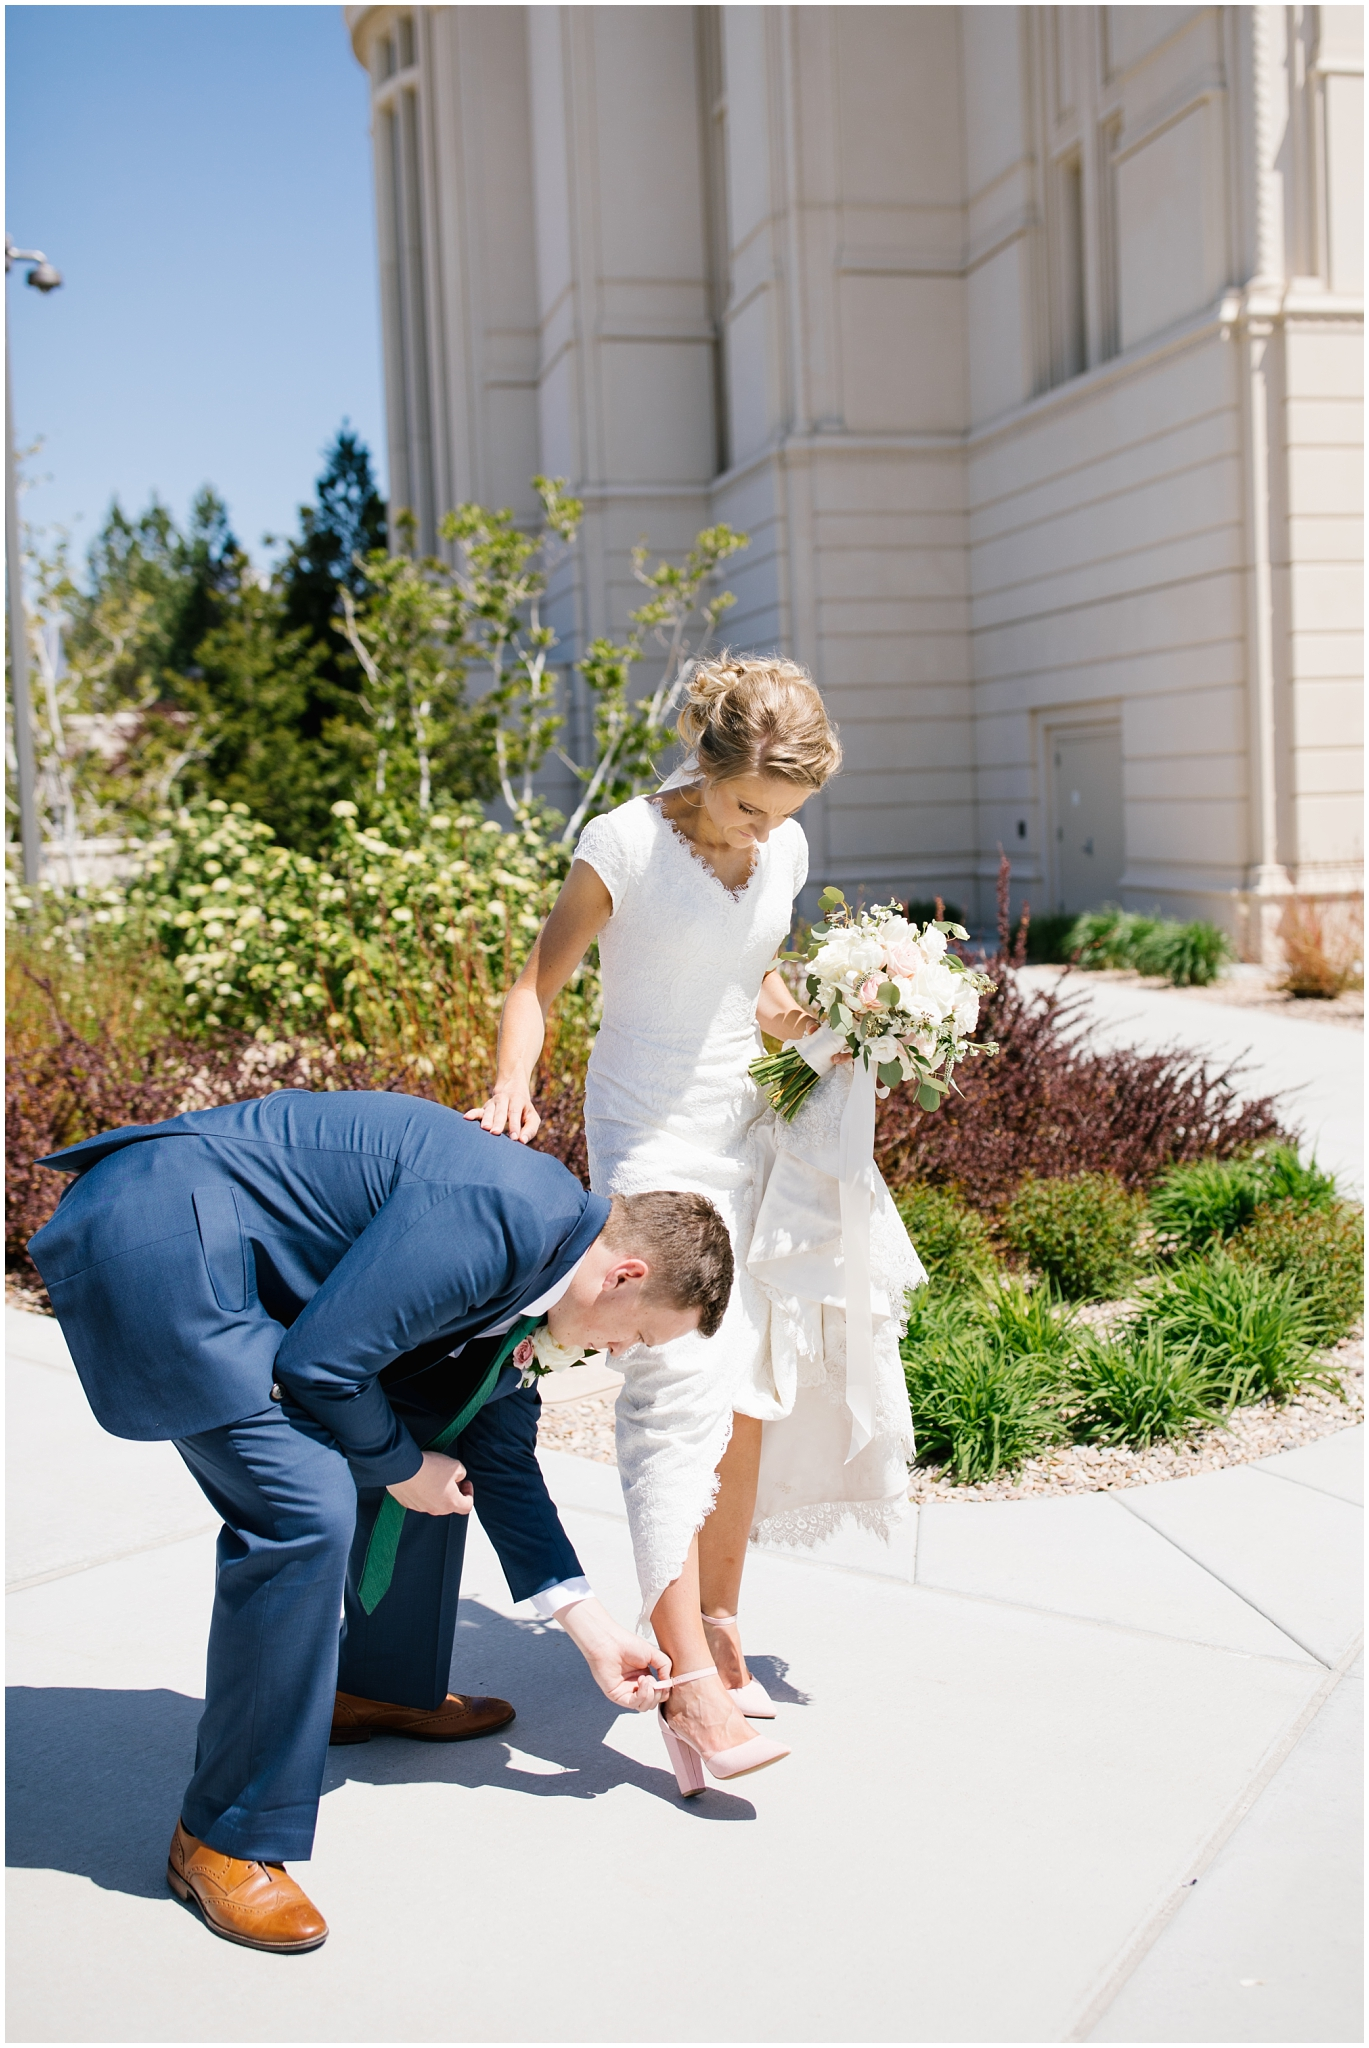 TA-Wedding-166_Lizzie-B-Imagery-Utah-Wedding-Photographer-Park-City-Salt-Lake-City-Thanksgiving-Point-Ashton-Gardens-Lehi-Utah.jpg